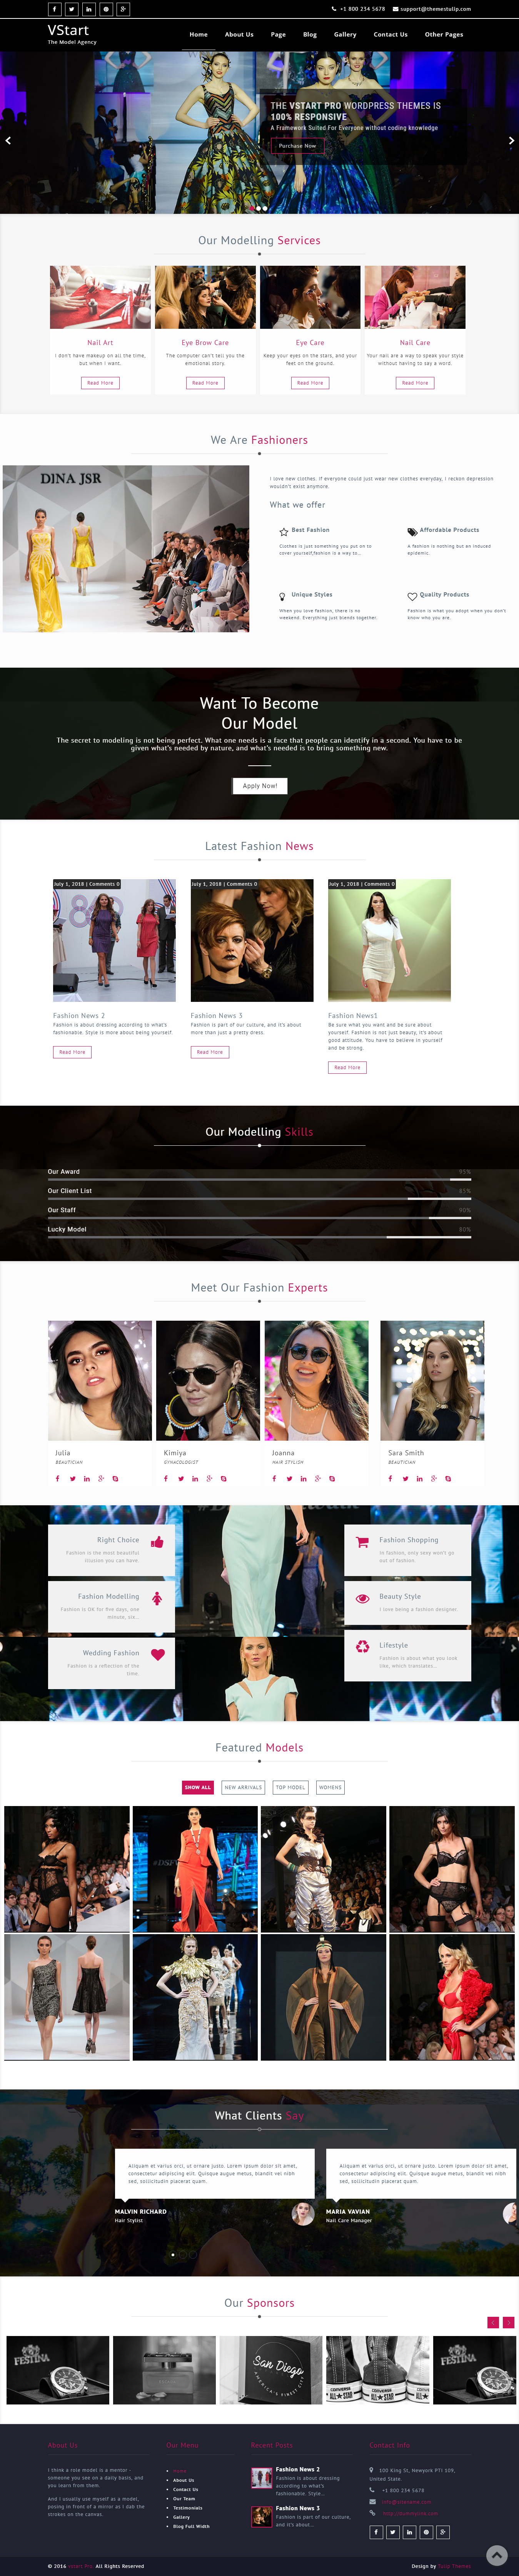 VStart - Best Free Fashion WordPress Theme